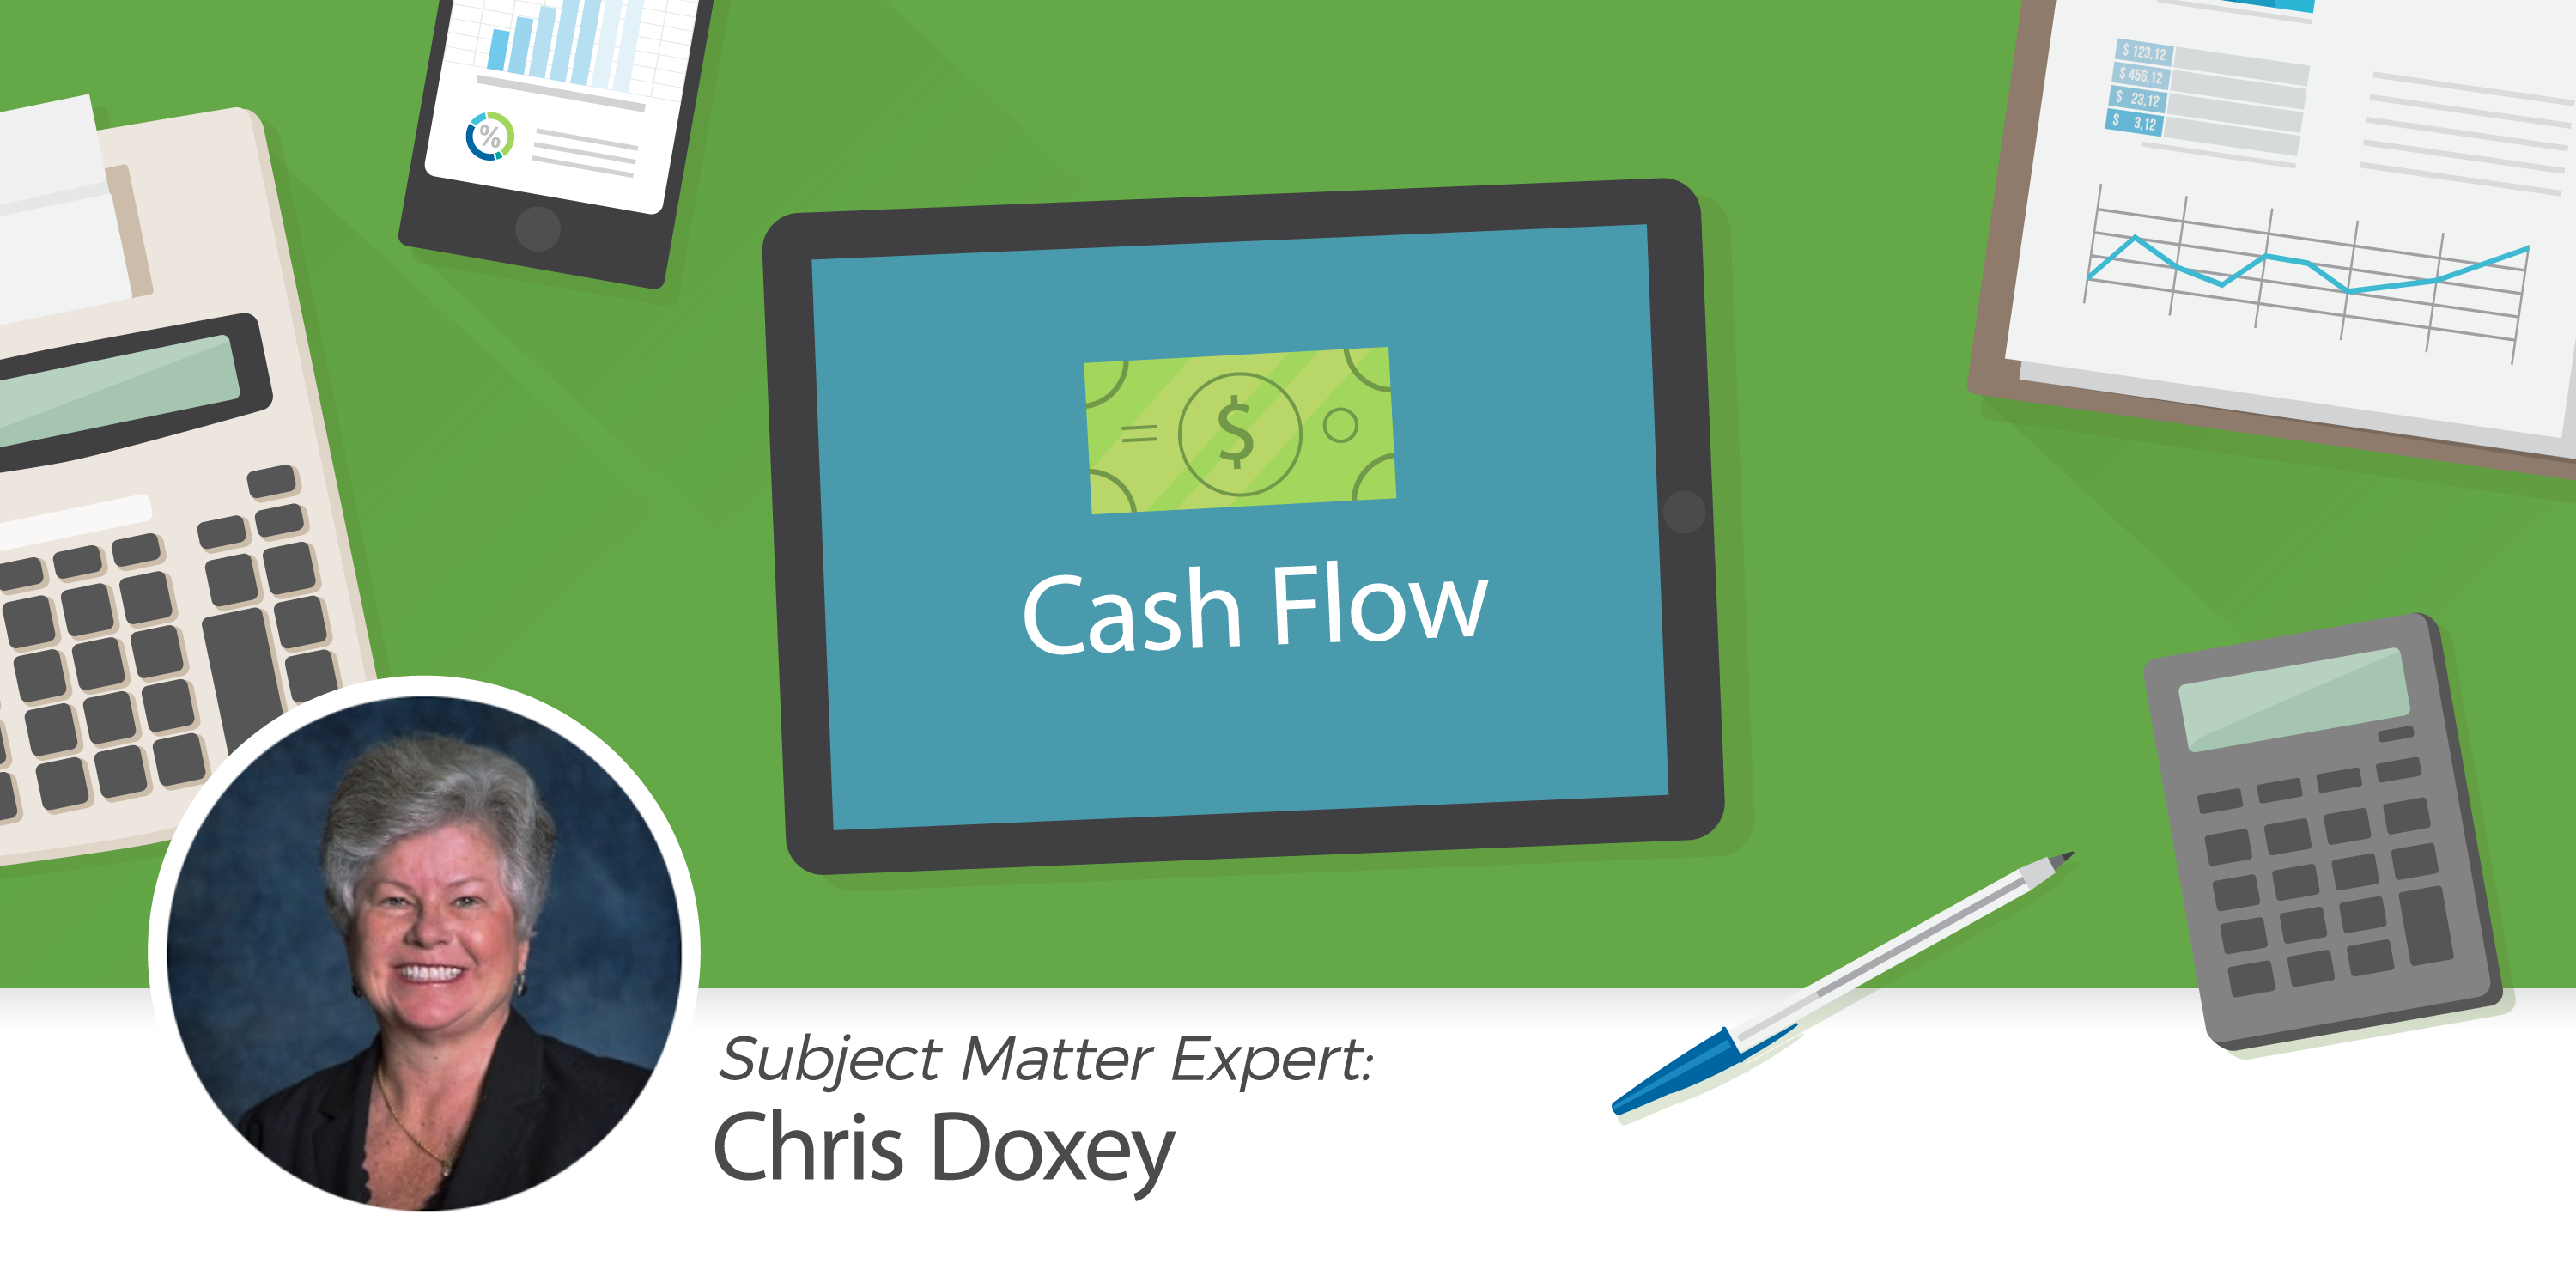 ap expert Chris Doxey discusses how supply chain financing improves working capital